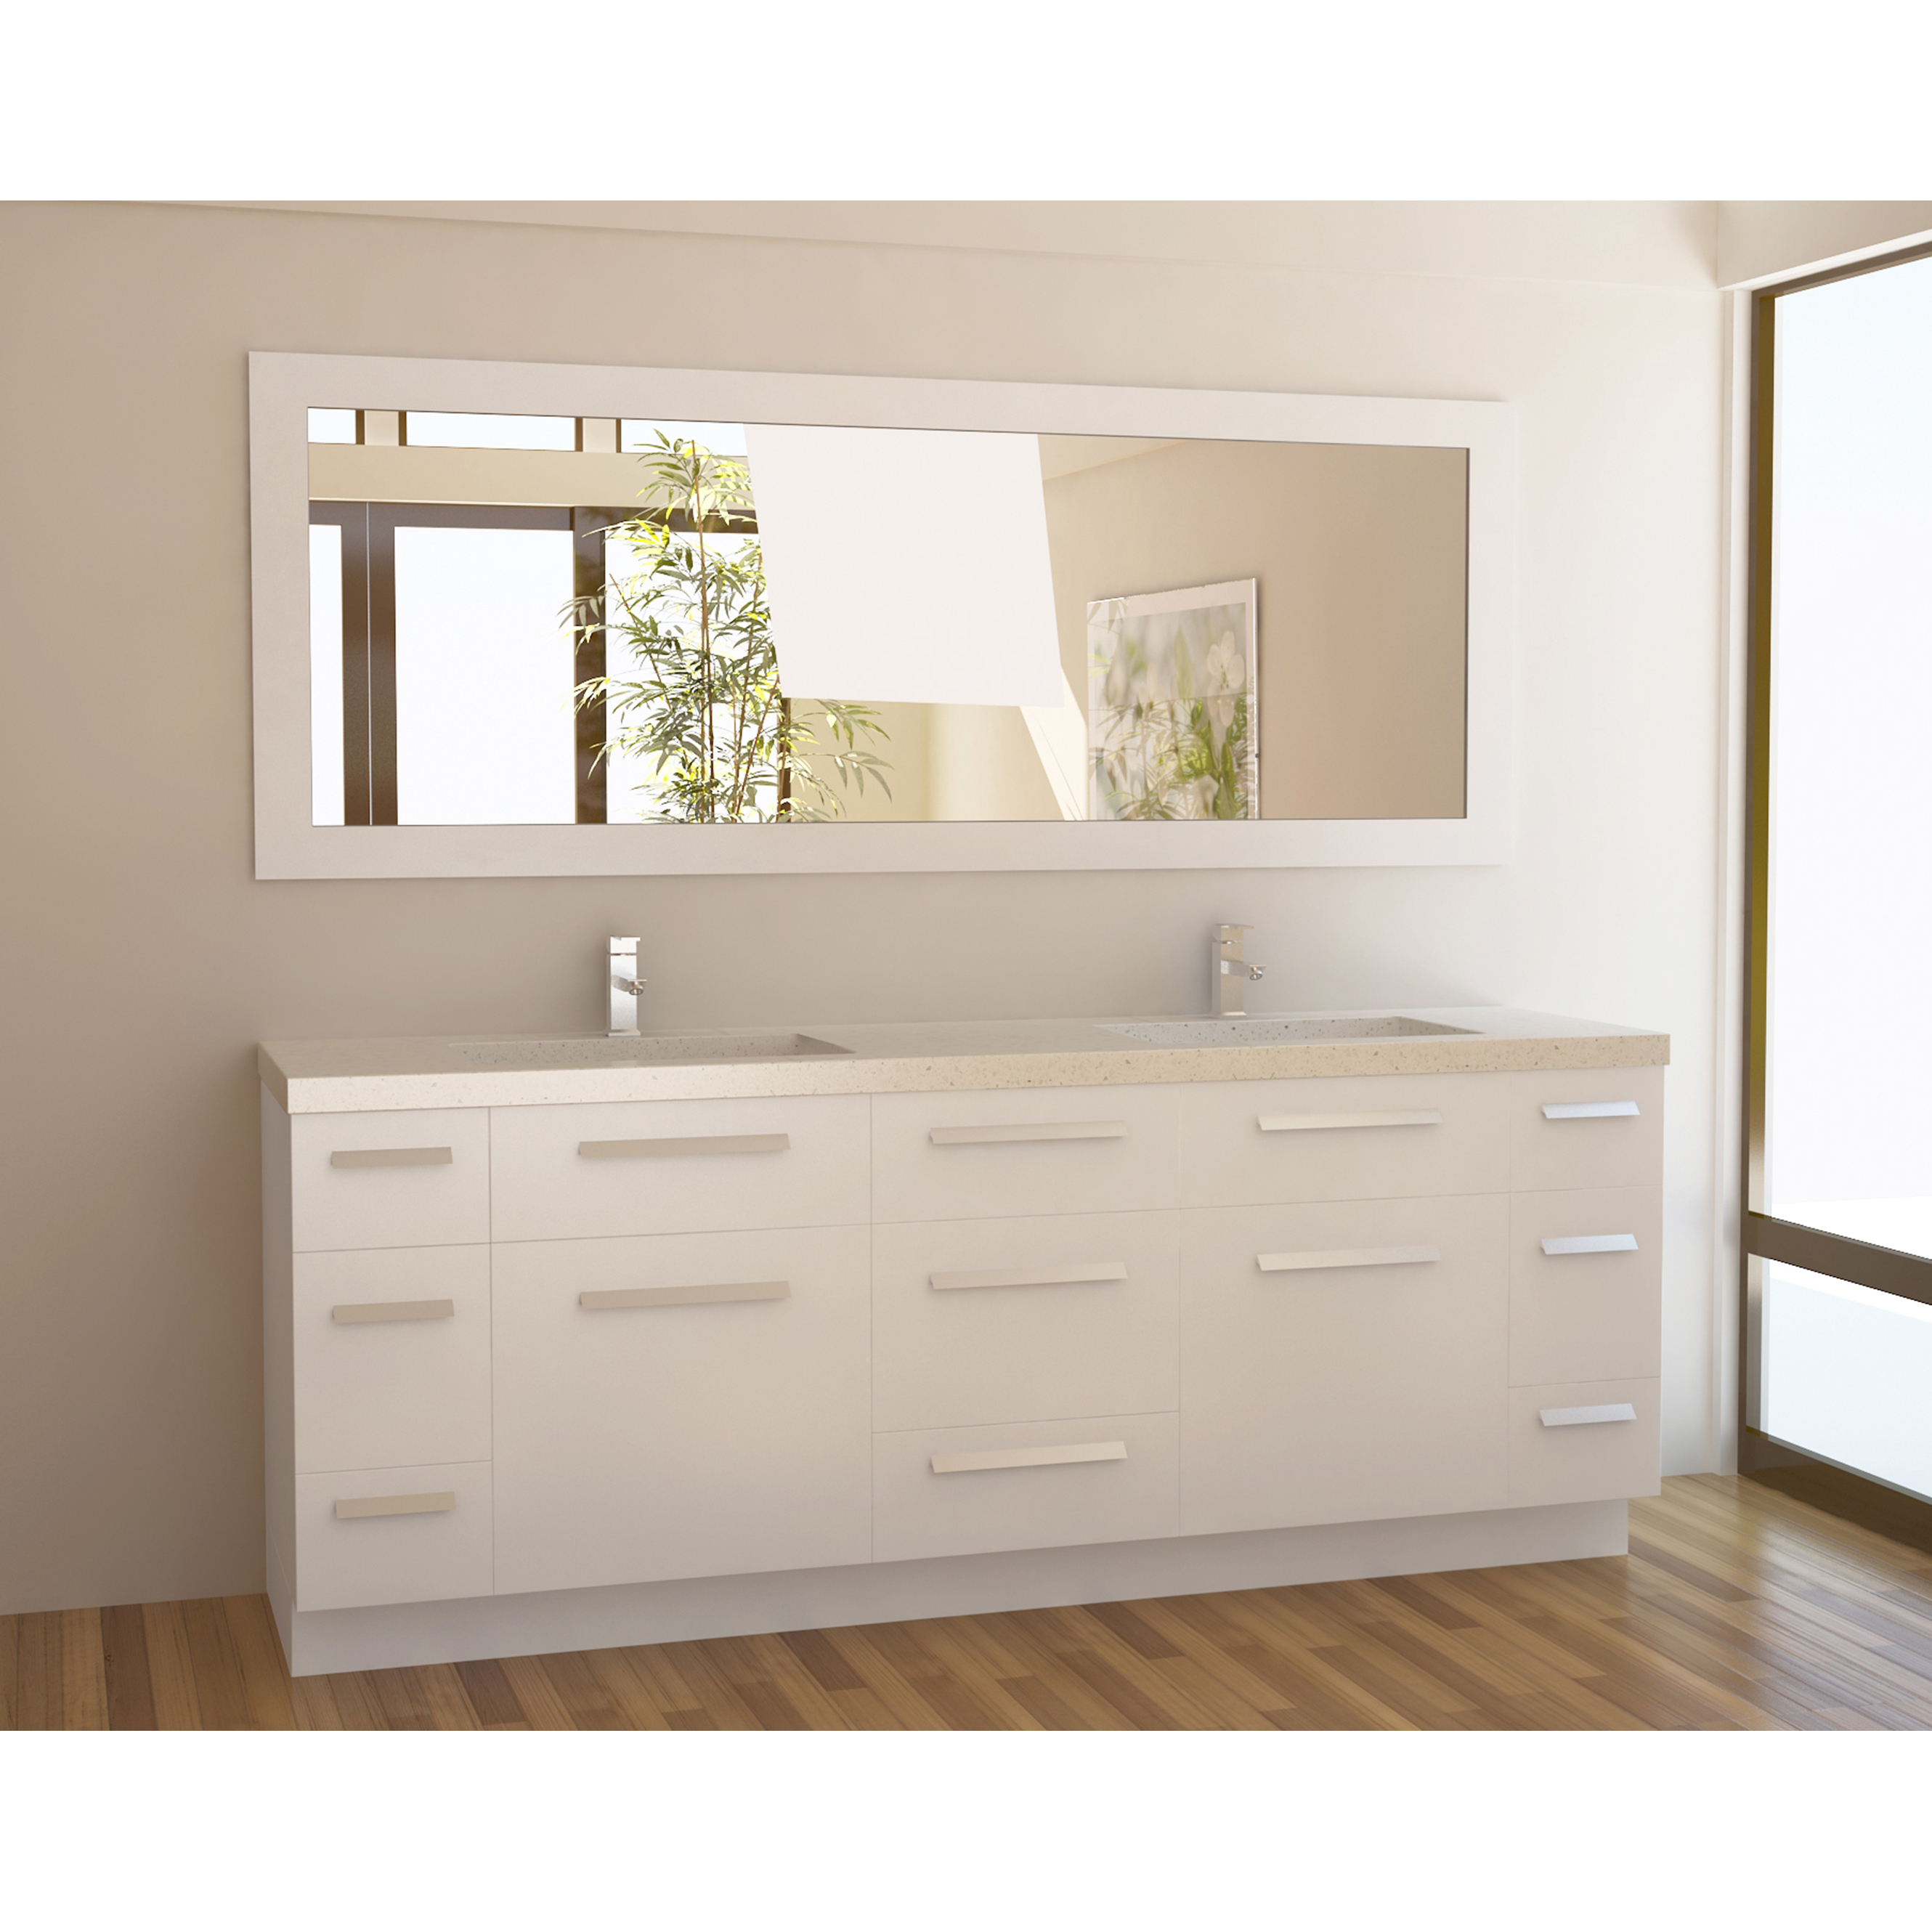 84 inch bathroom vanity the variants homesfeed for Bathroom vanity designs